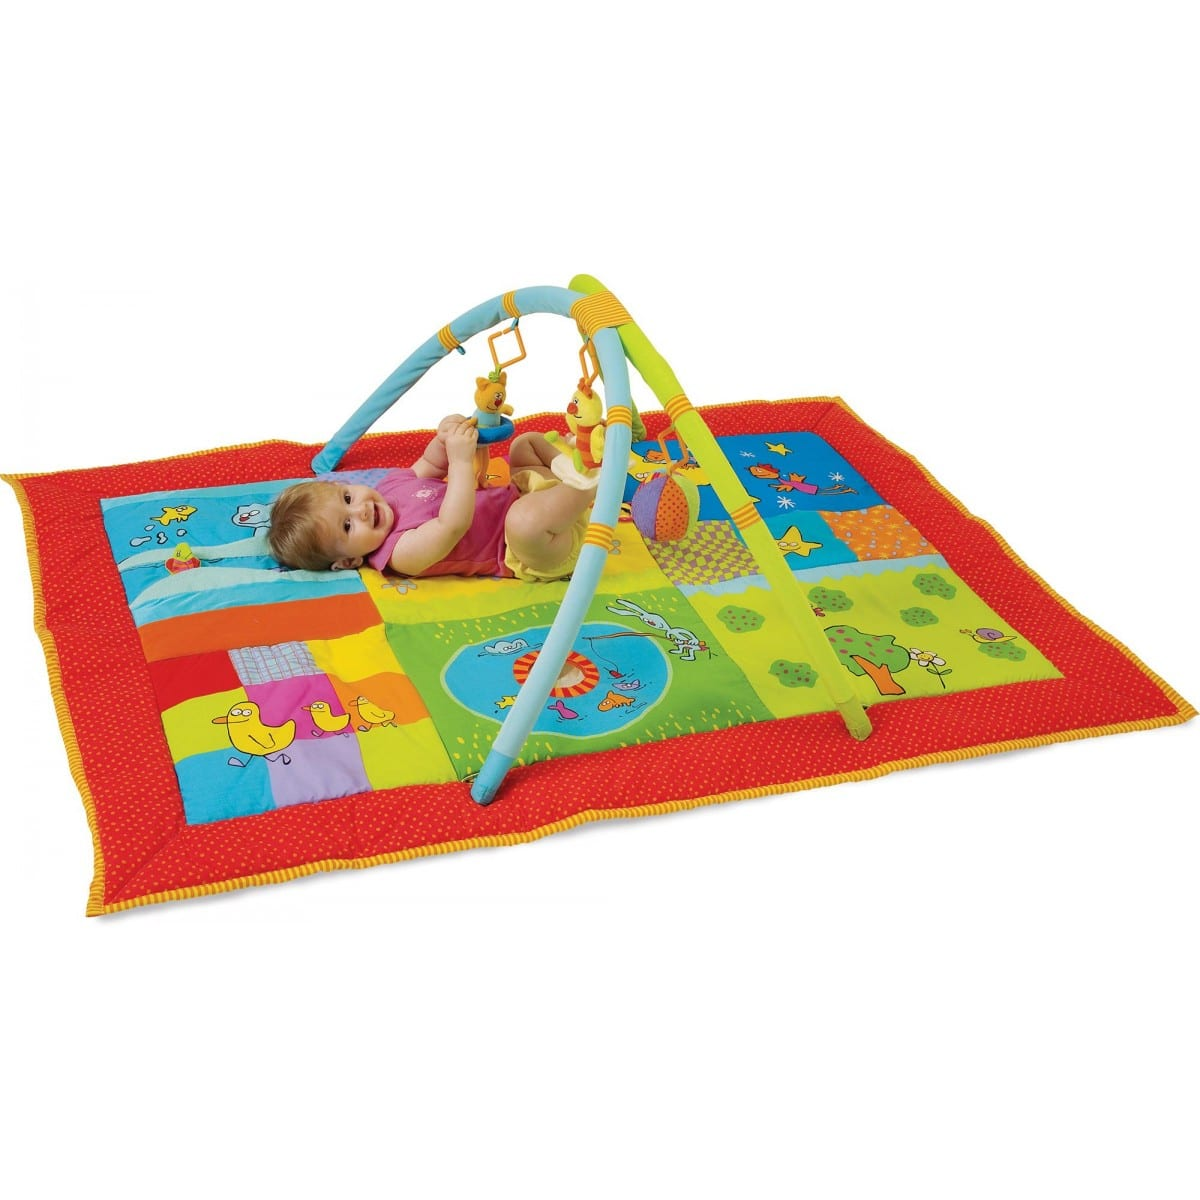 TAF10945-2-in-1-Smart-Gym-with-arches-_-child03_1